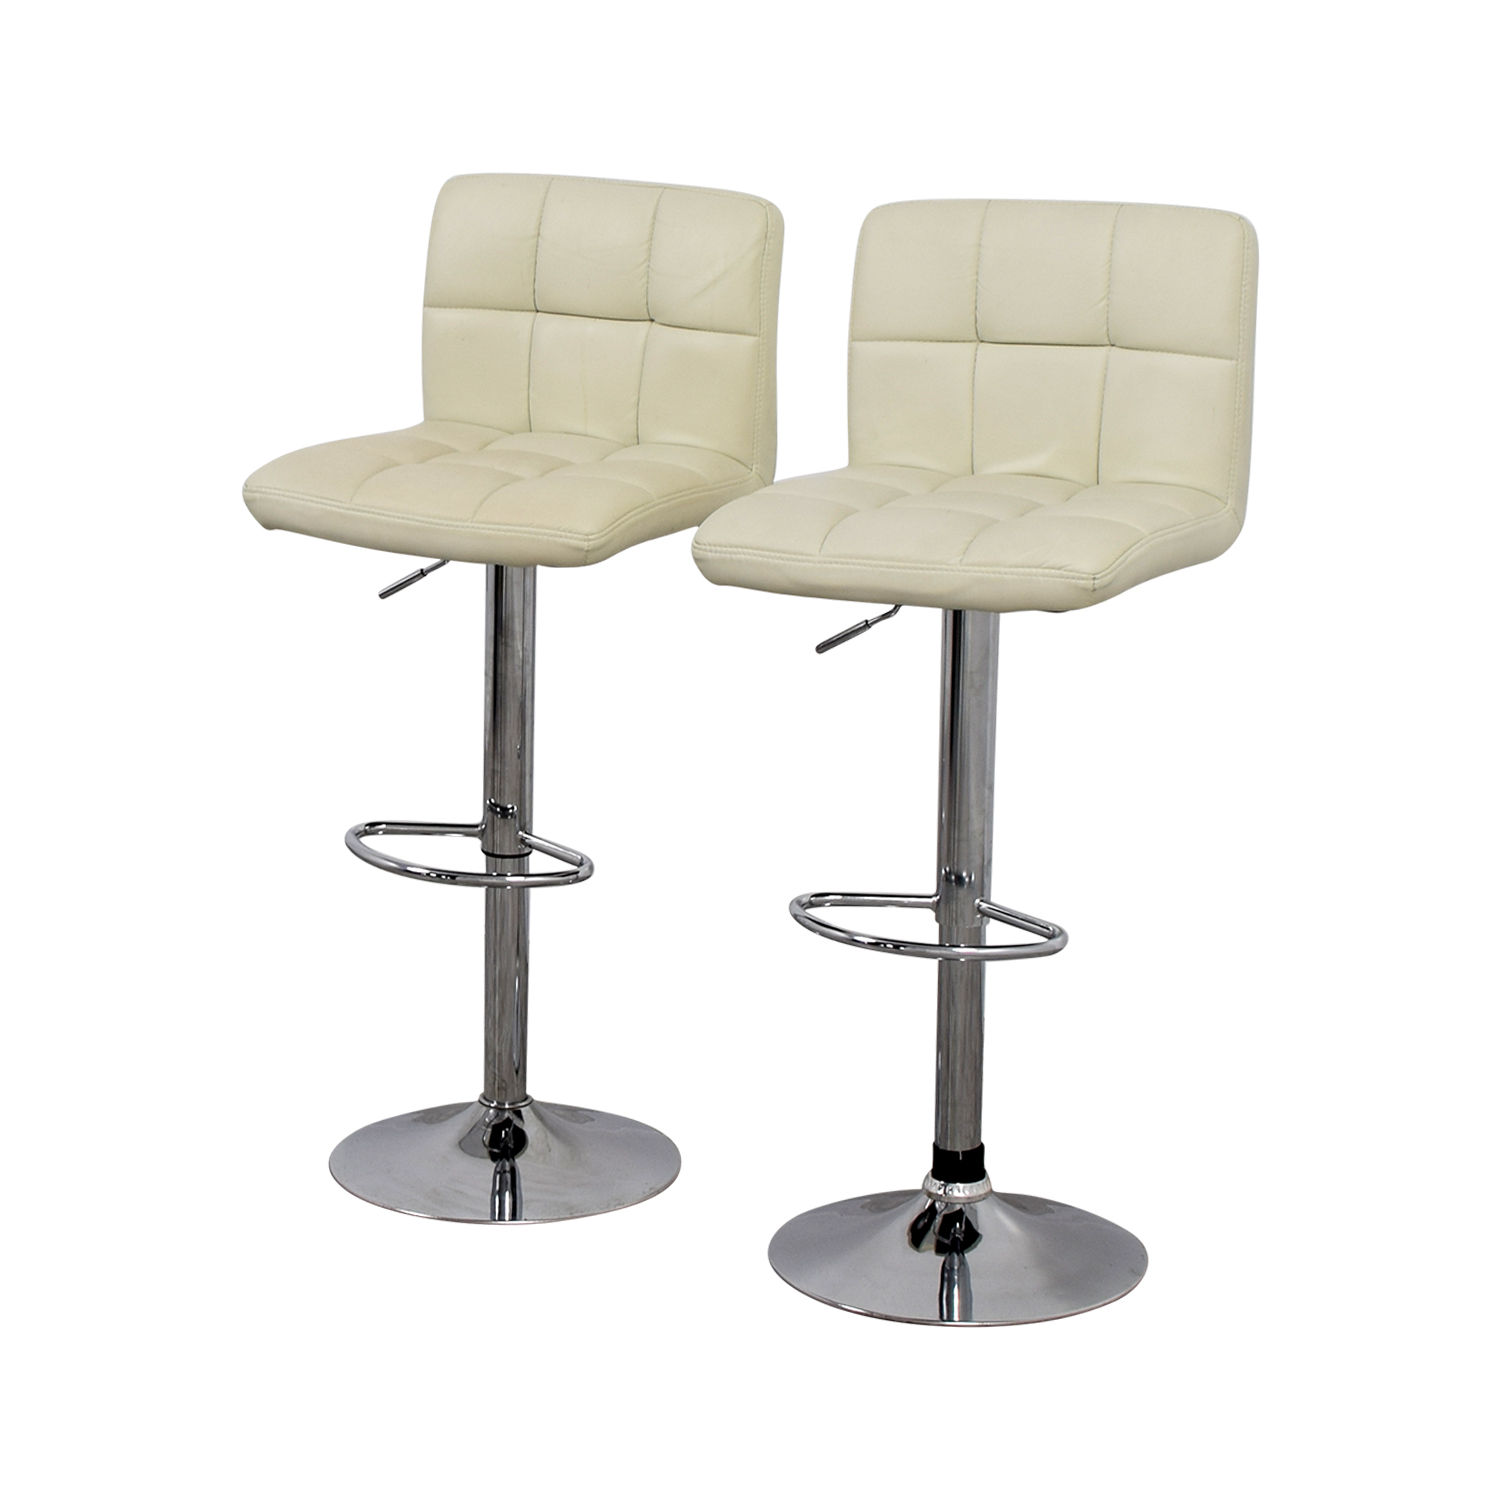 shop Creme and Chrome Tufted Bar Stools online